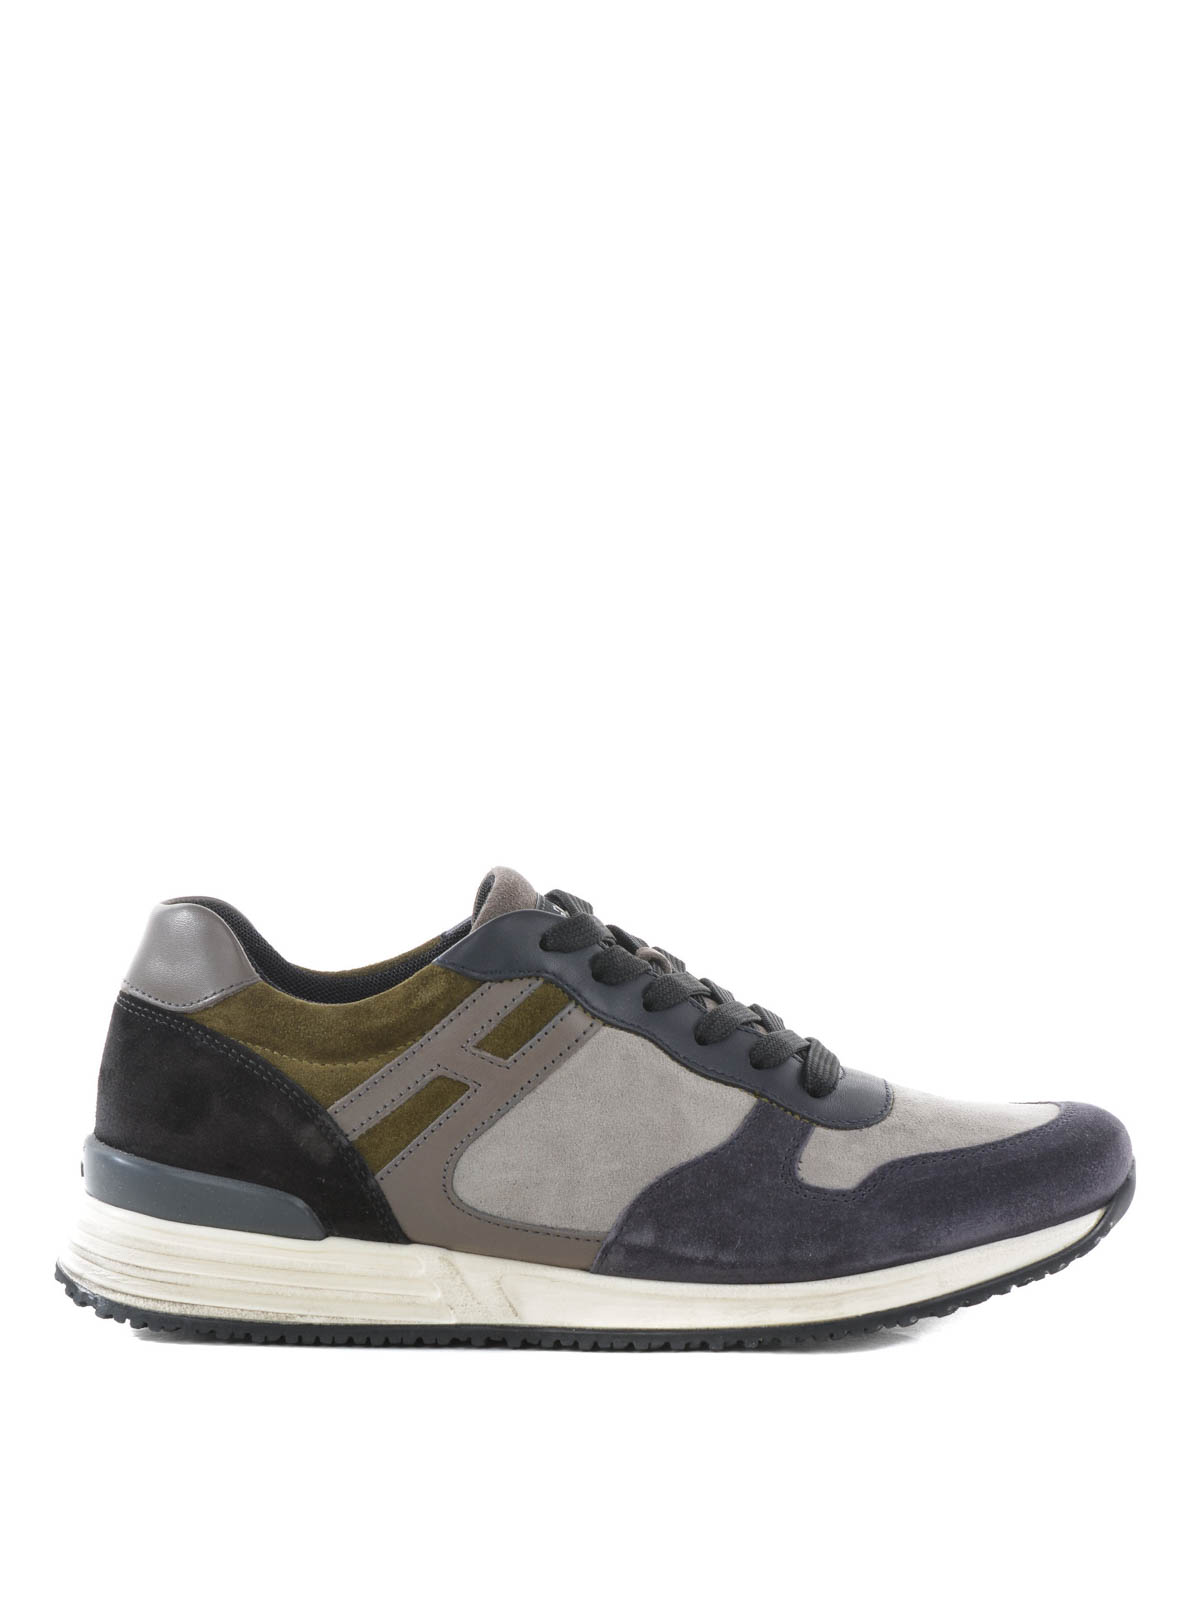 Hogan Rebel Rebel R218 Basse Scamosciate Hogan Rebel Sneakers Ikrix